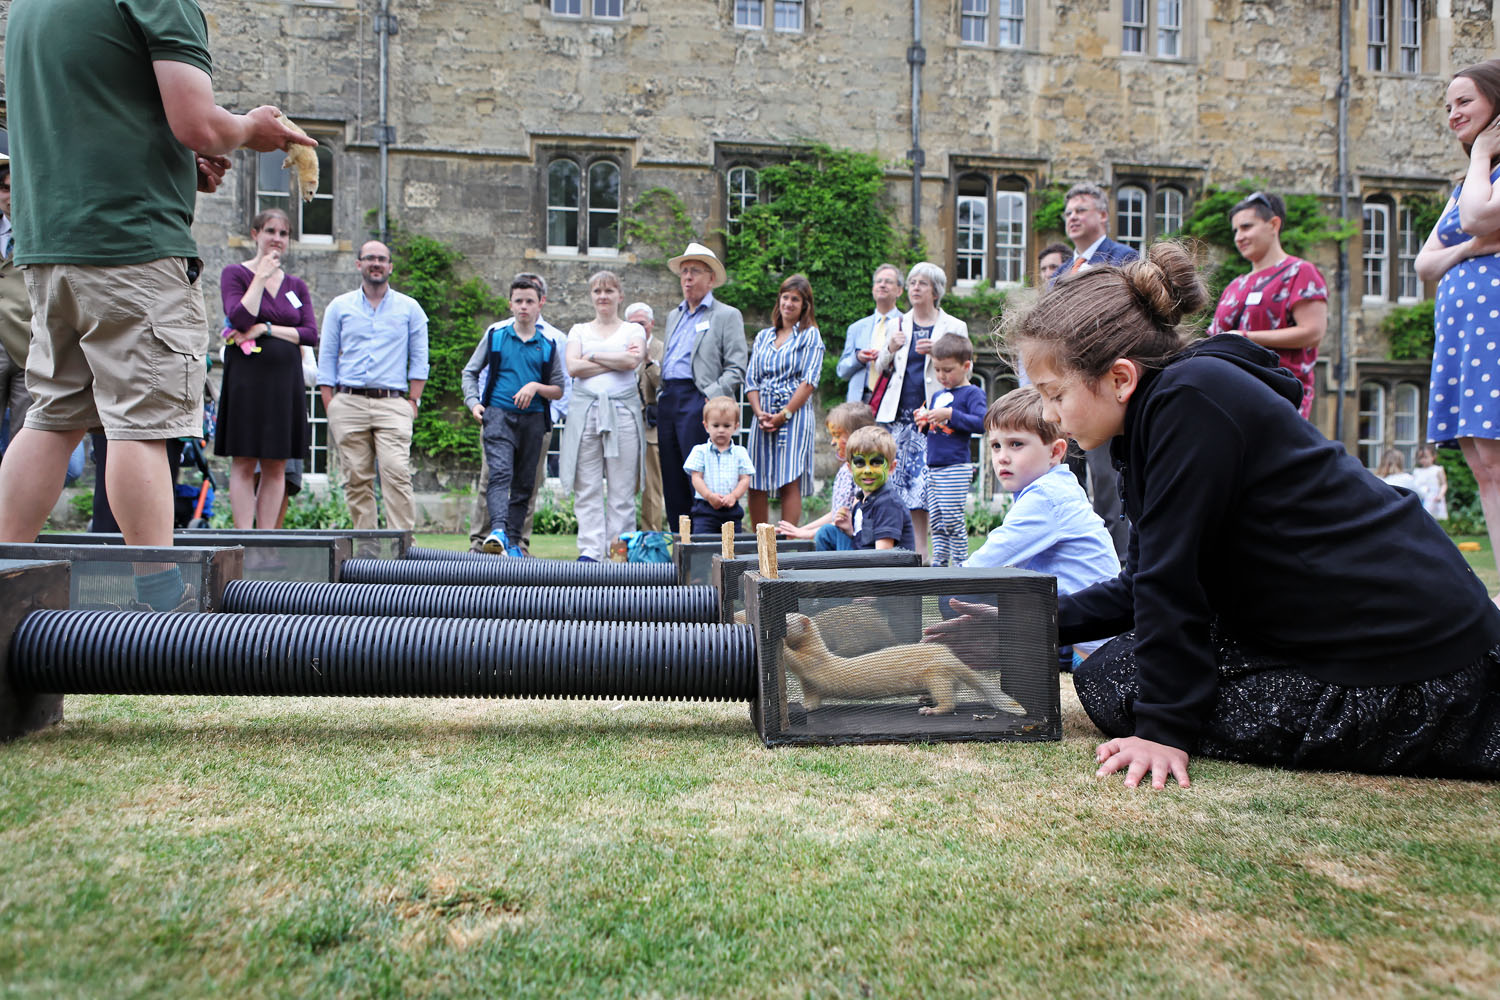 Photography of the Merton College/Society 2017 Family Fayre, held at Merton College Oxford on the 25th June 2017.